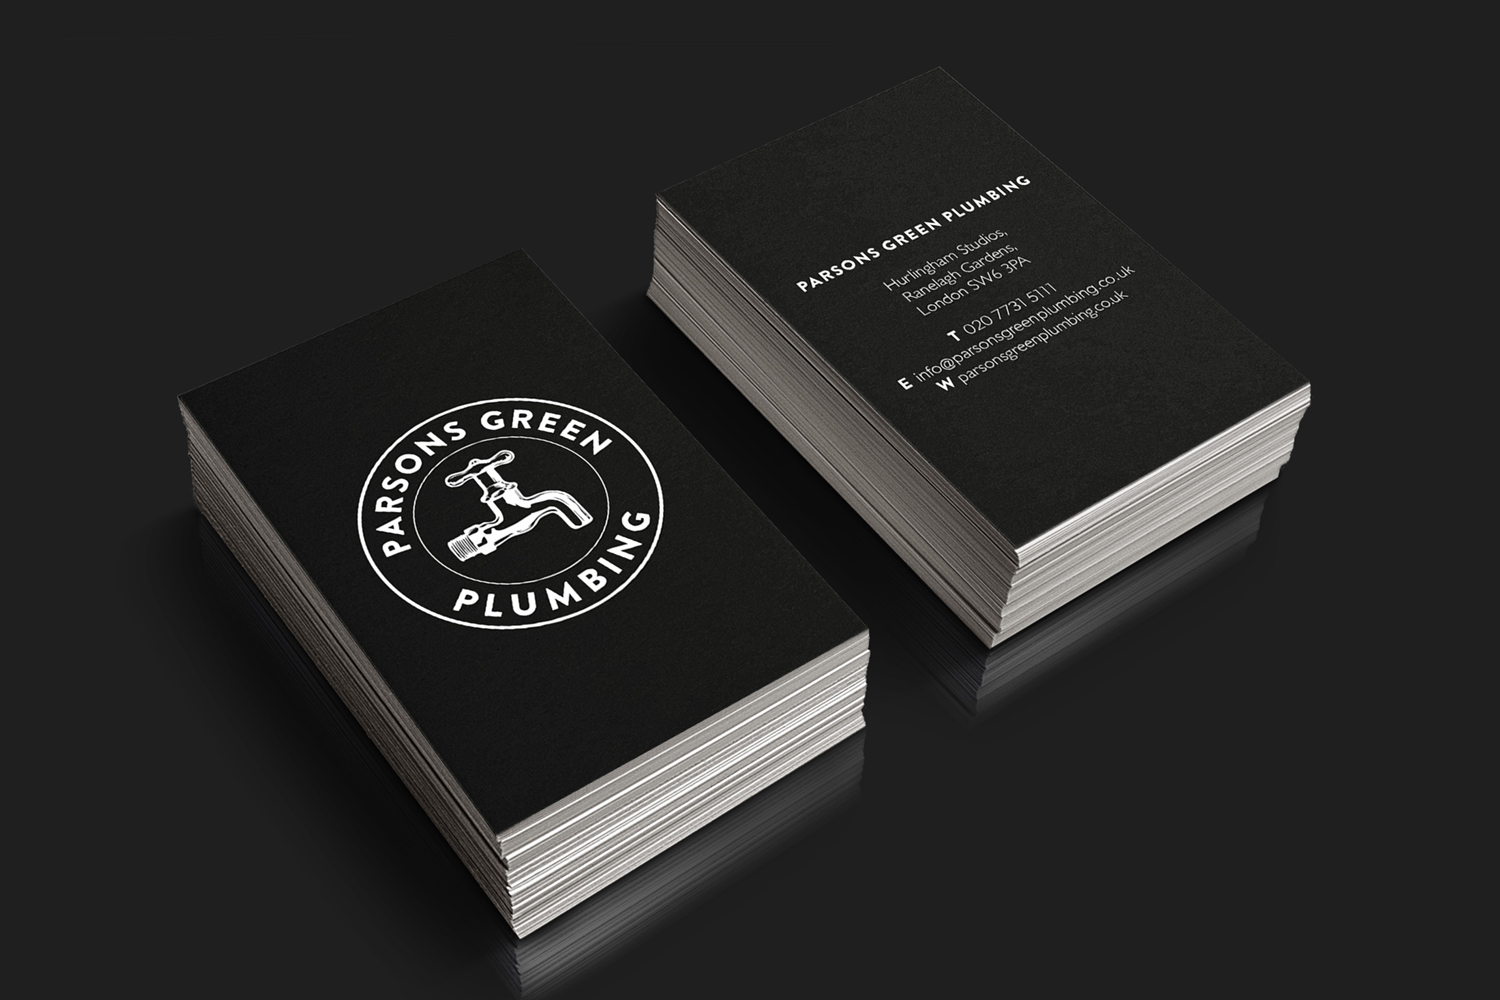 3-pgplumb-business-cards